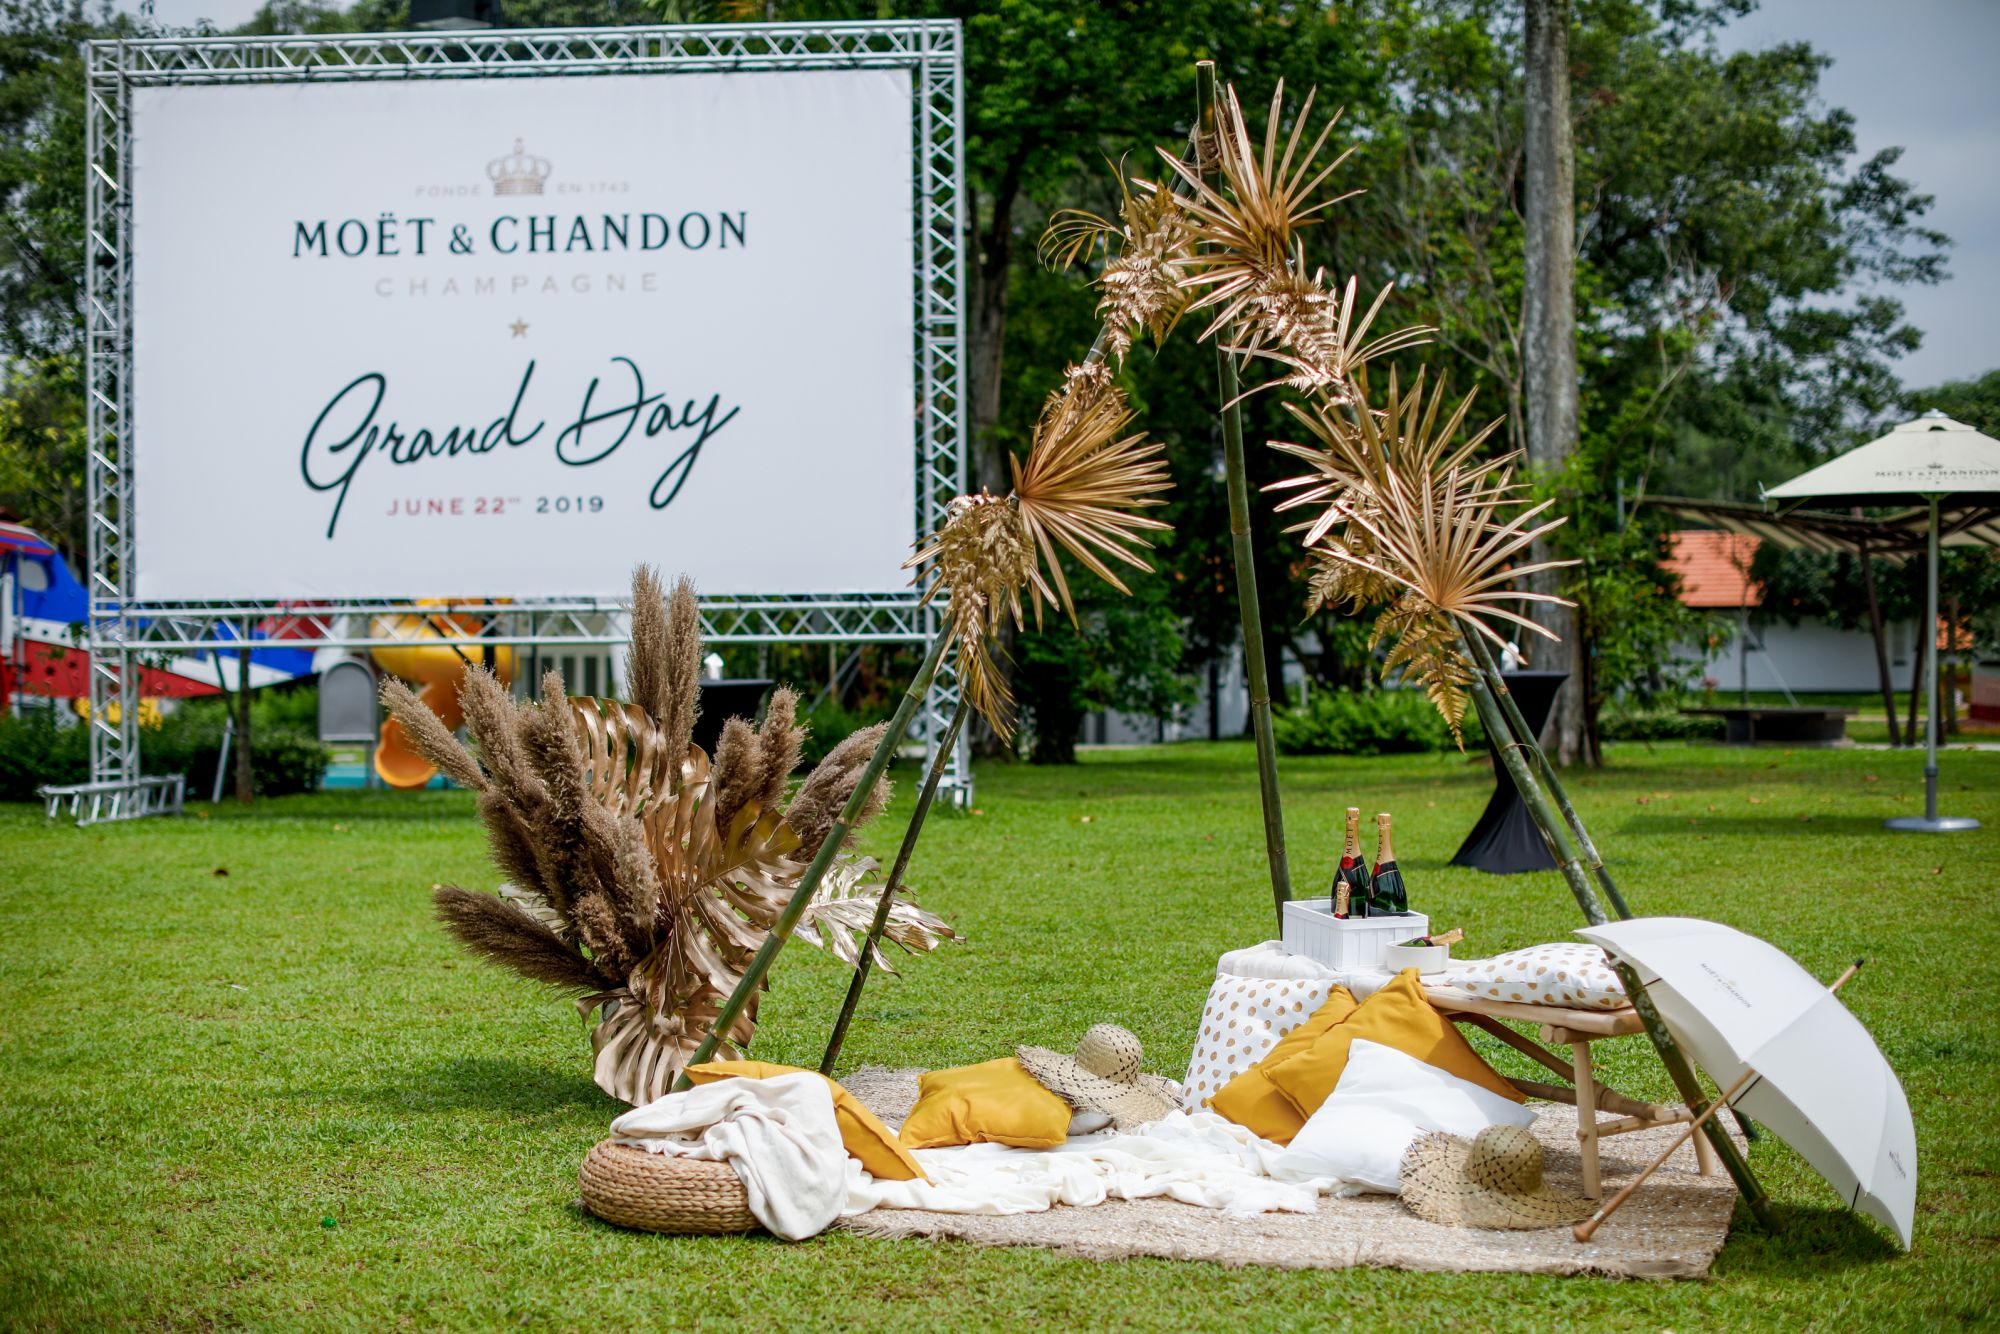 Celebrating 150 Years of Moët Impérial